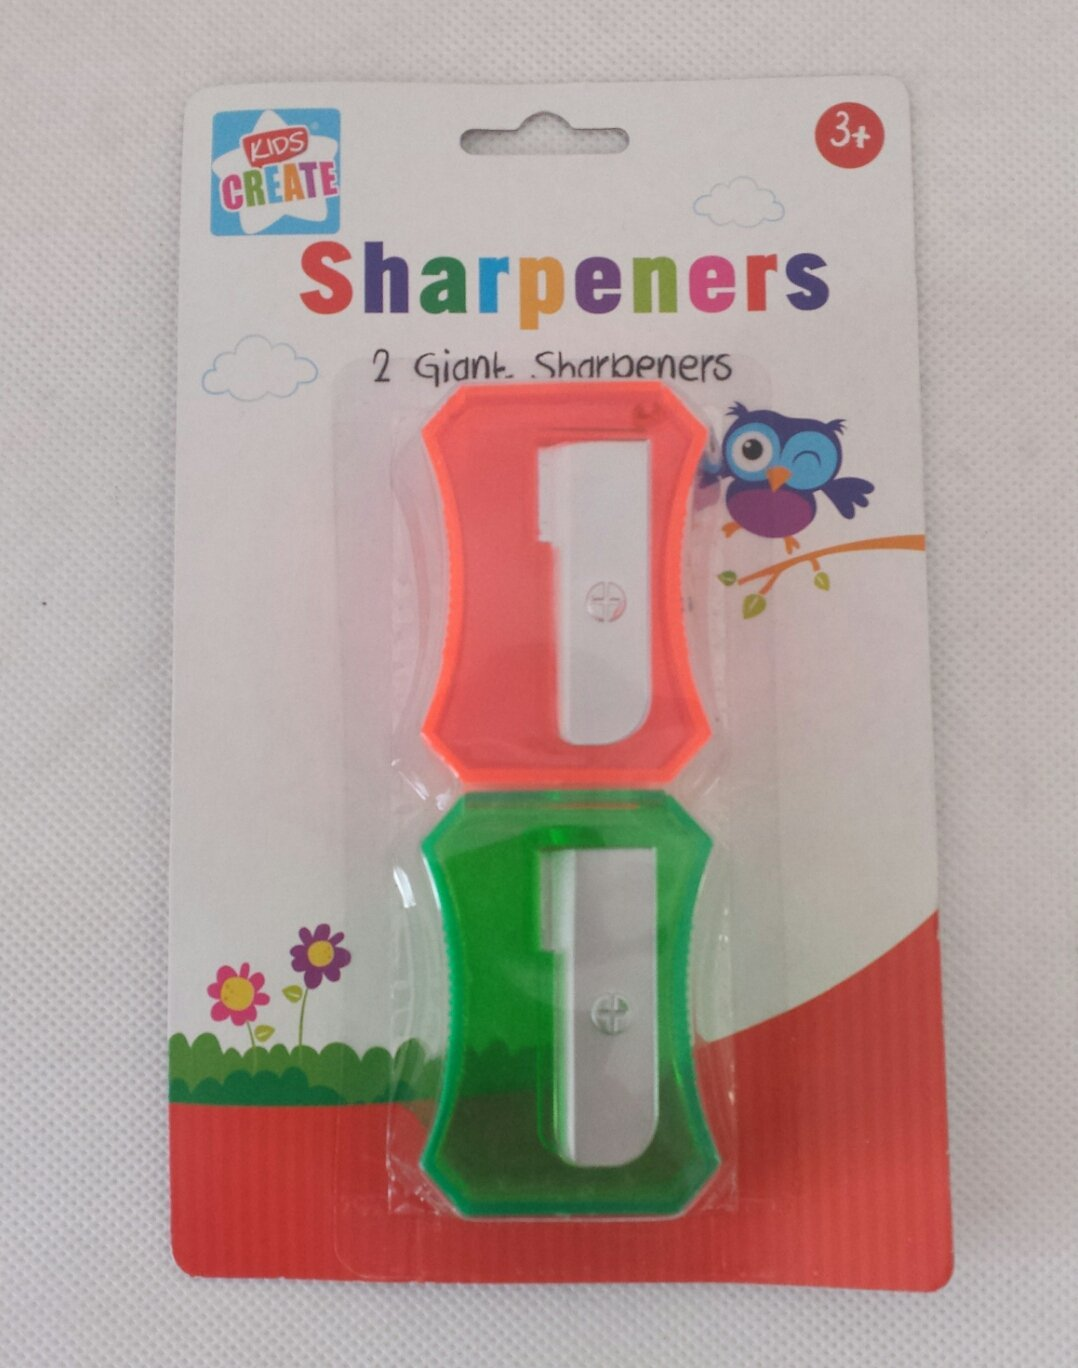 Plastic Pack of 2 Assorted Colour 29.7 x 21 x 2 cm Anker Kids Create//Arts and Crafts Novelty Sharpeners